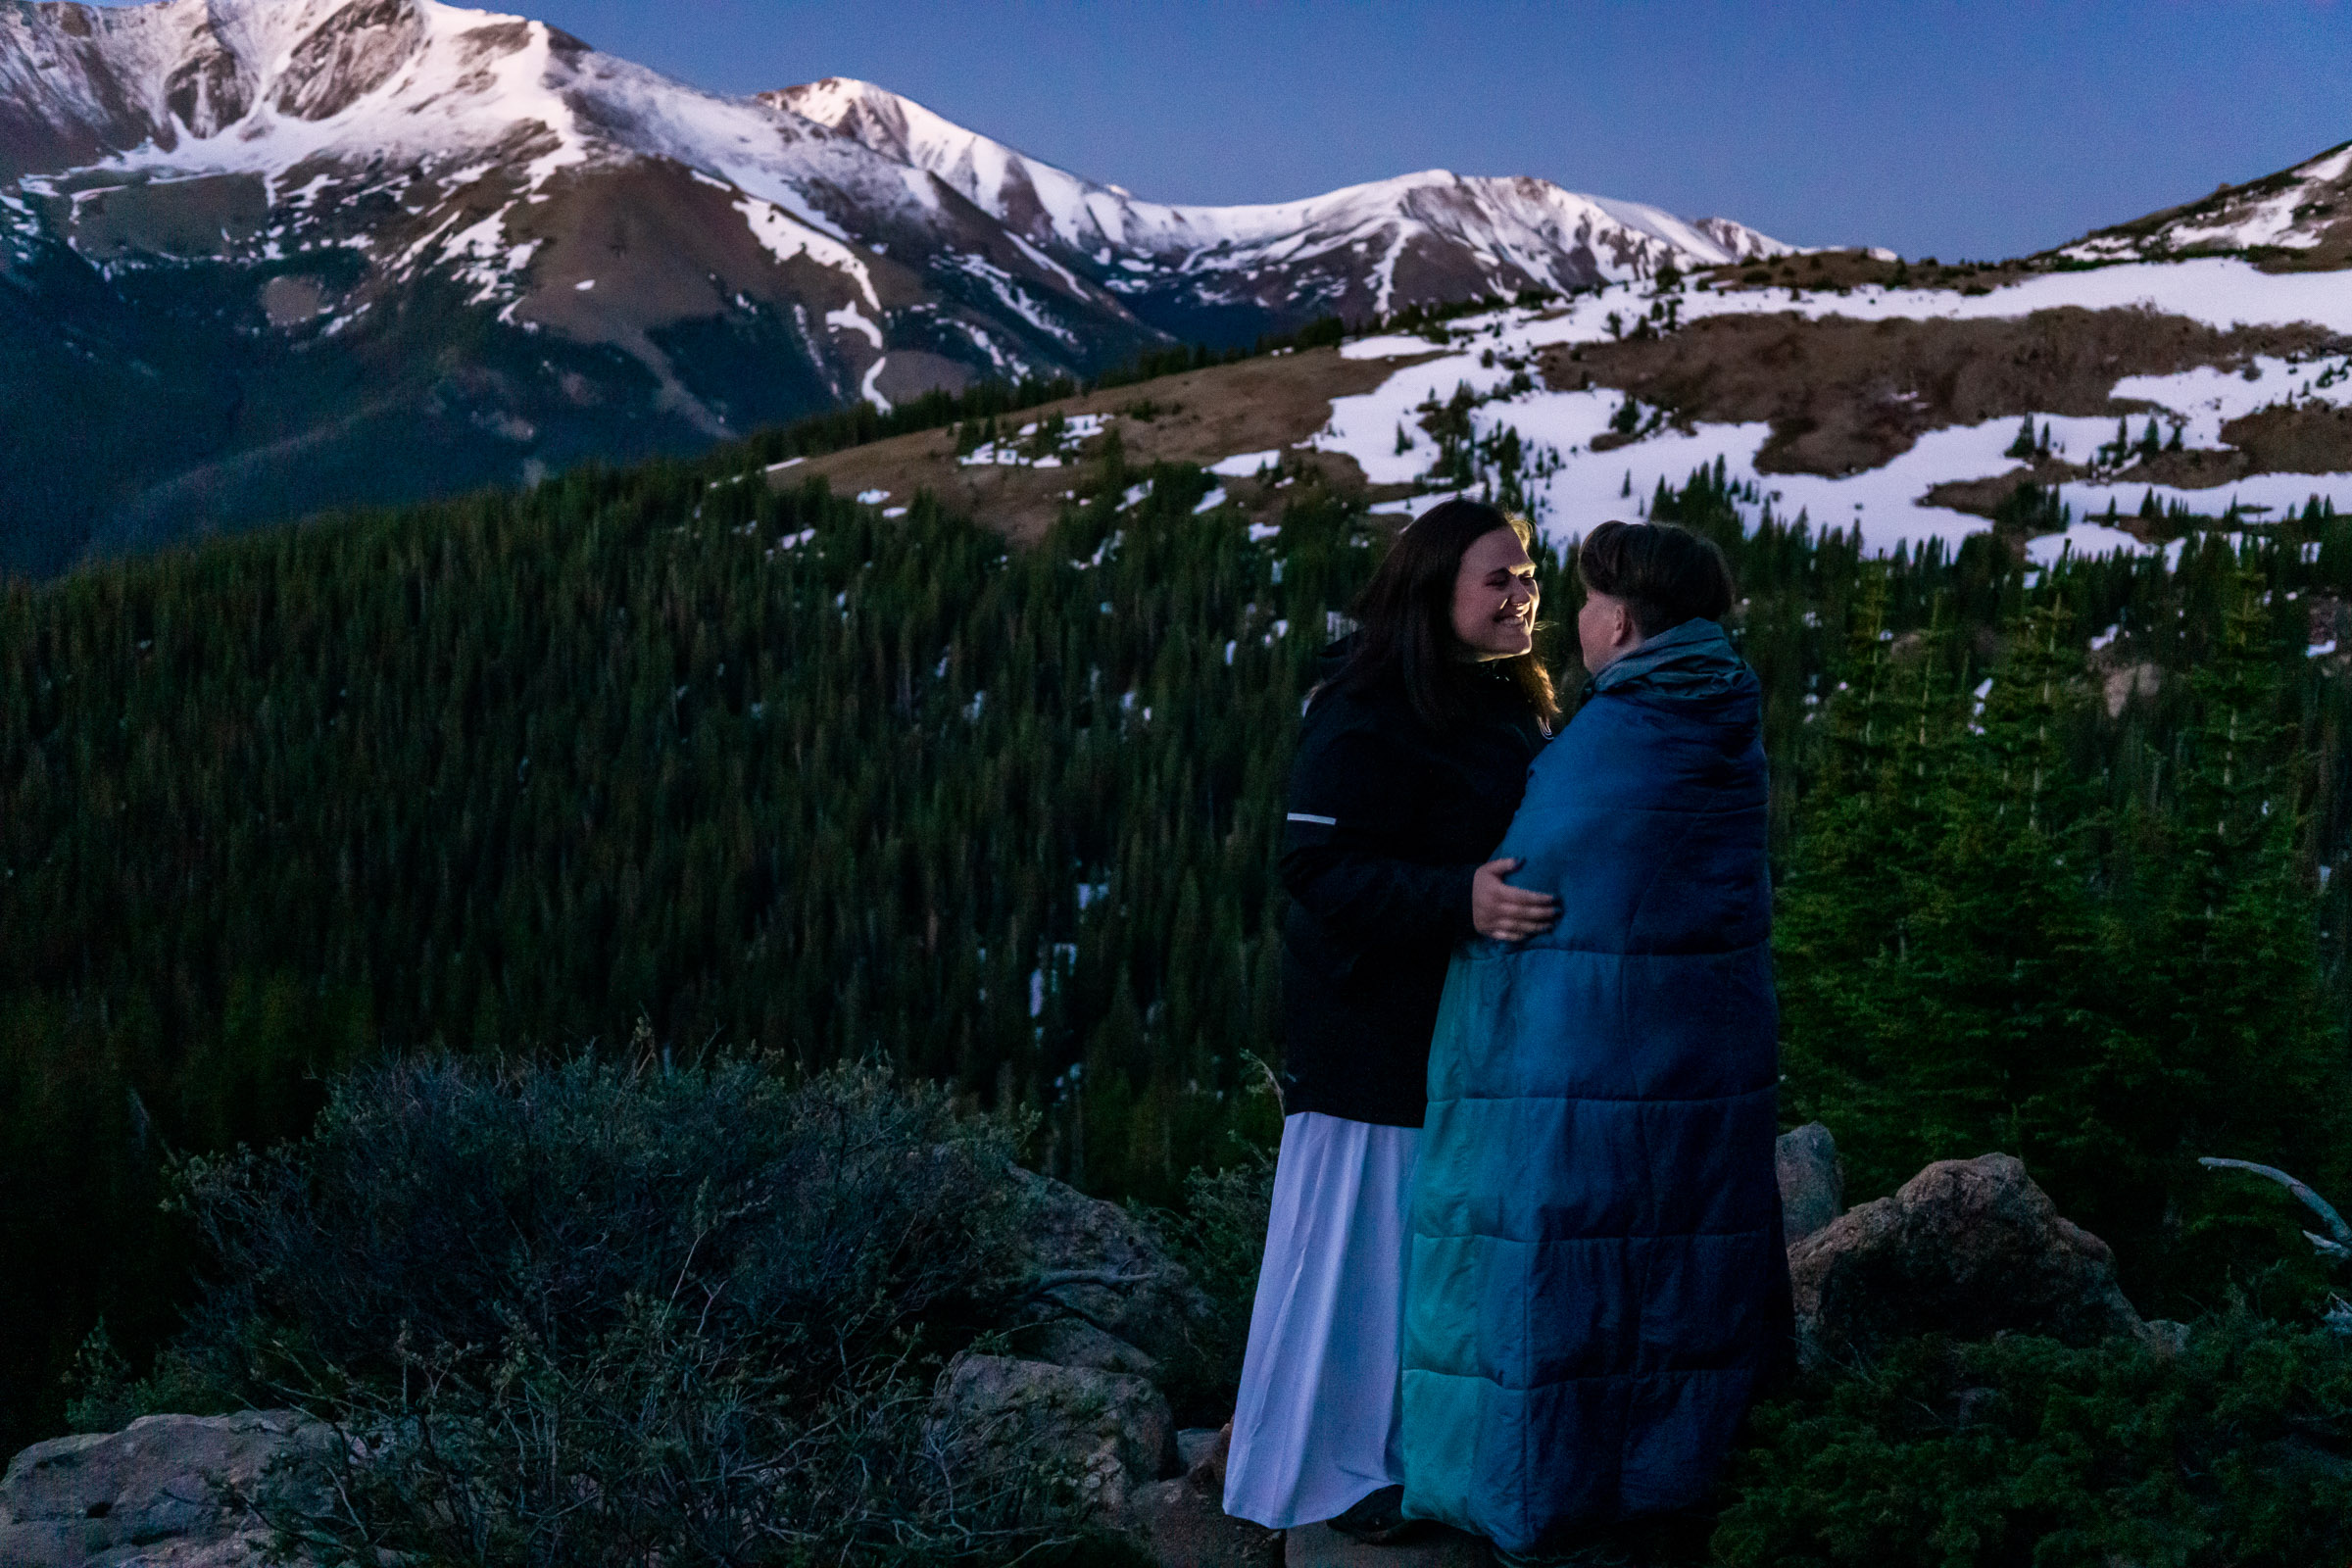 Two brides happily embracing in front of a mountain alpenglow sunrise. Photo by Gabby Jockers Photography. Same sex wedding, lesbian elopement, lesbian wedding, lgbt elopement, lgbtqia wedding, lgbt wedding, colorado elopement, colorado elopement photography, berthoud pass, sunrise elopement, hiking elopement, spring wedding, mountain wedding, adventure photos, mountain elopement, spring elopement, adventure elopement, denver colorado photographer, elopement photographer